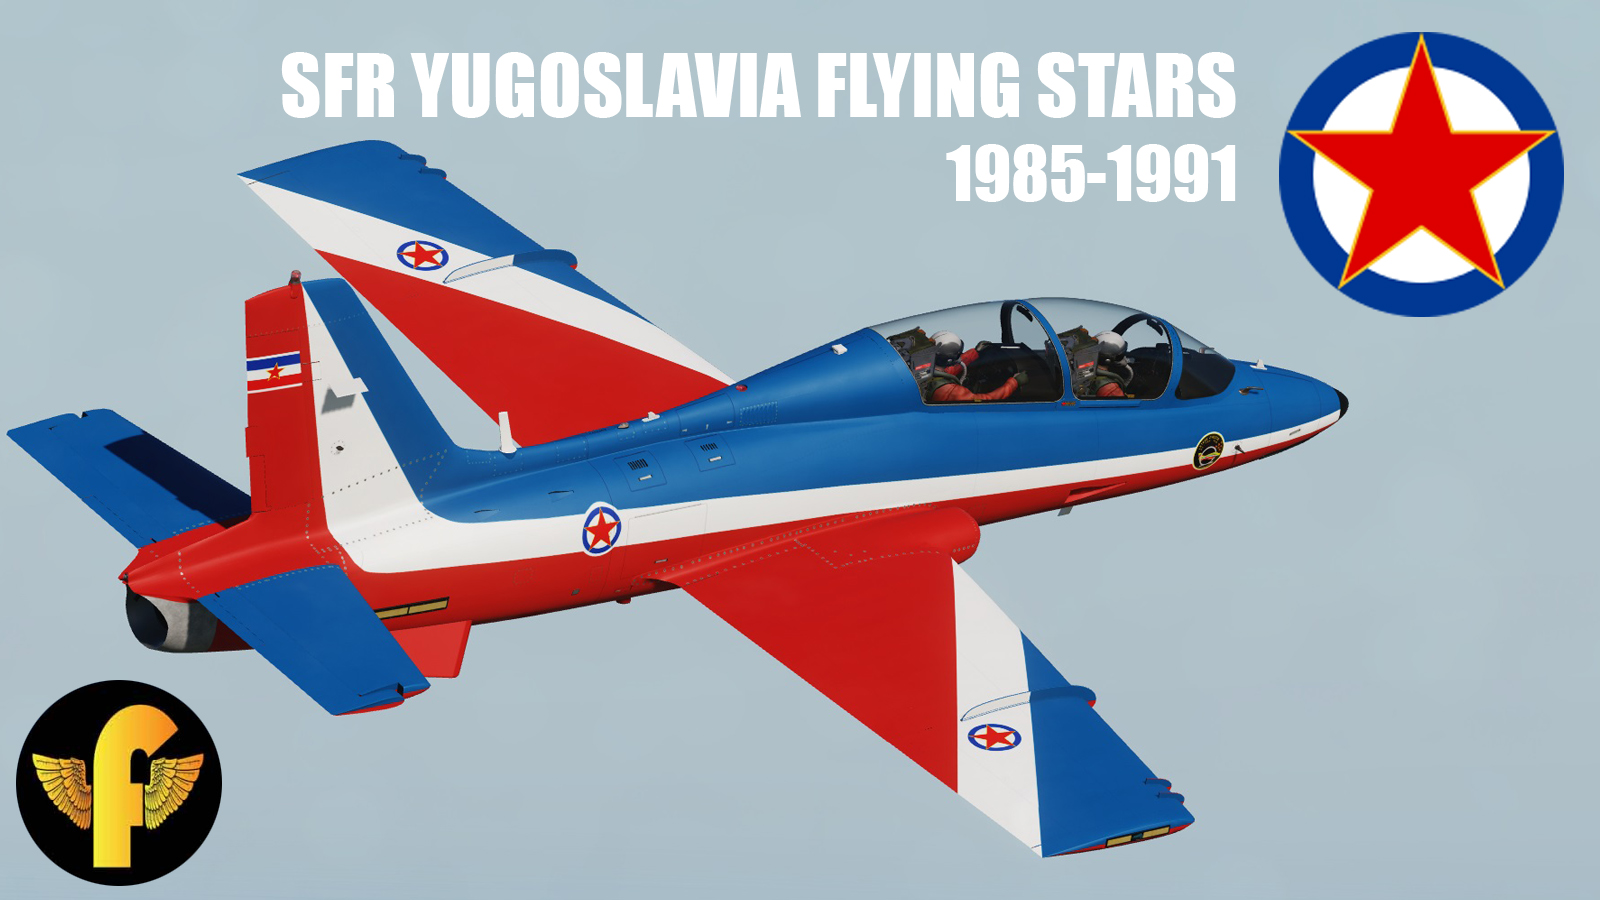 """Flying Stars"" Aerobatic Team, Socialist FR Yugoslavia Air Force 1985 - 1991"